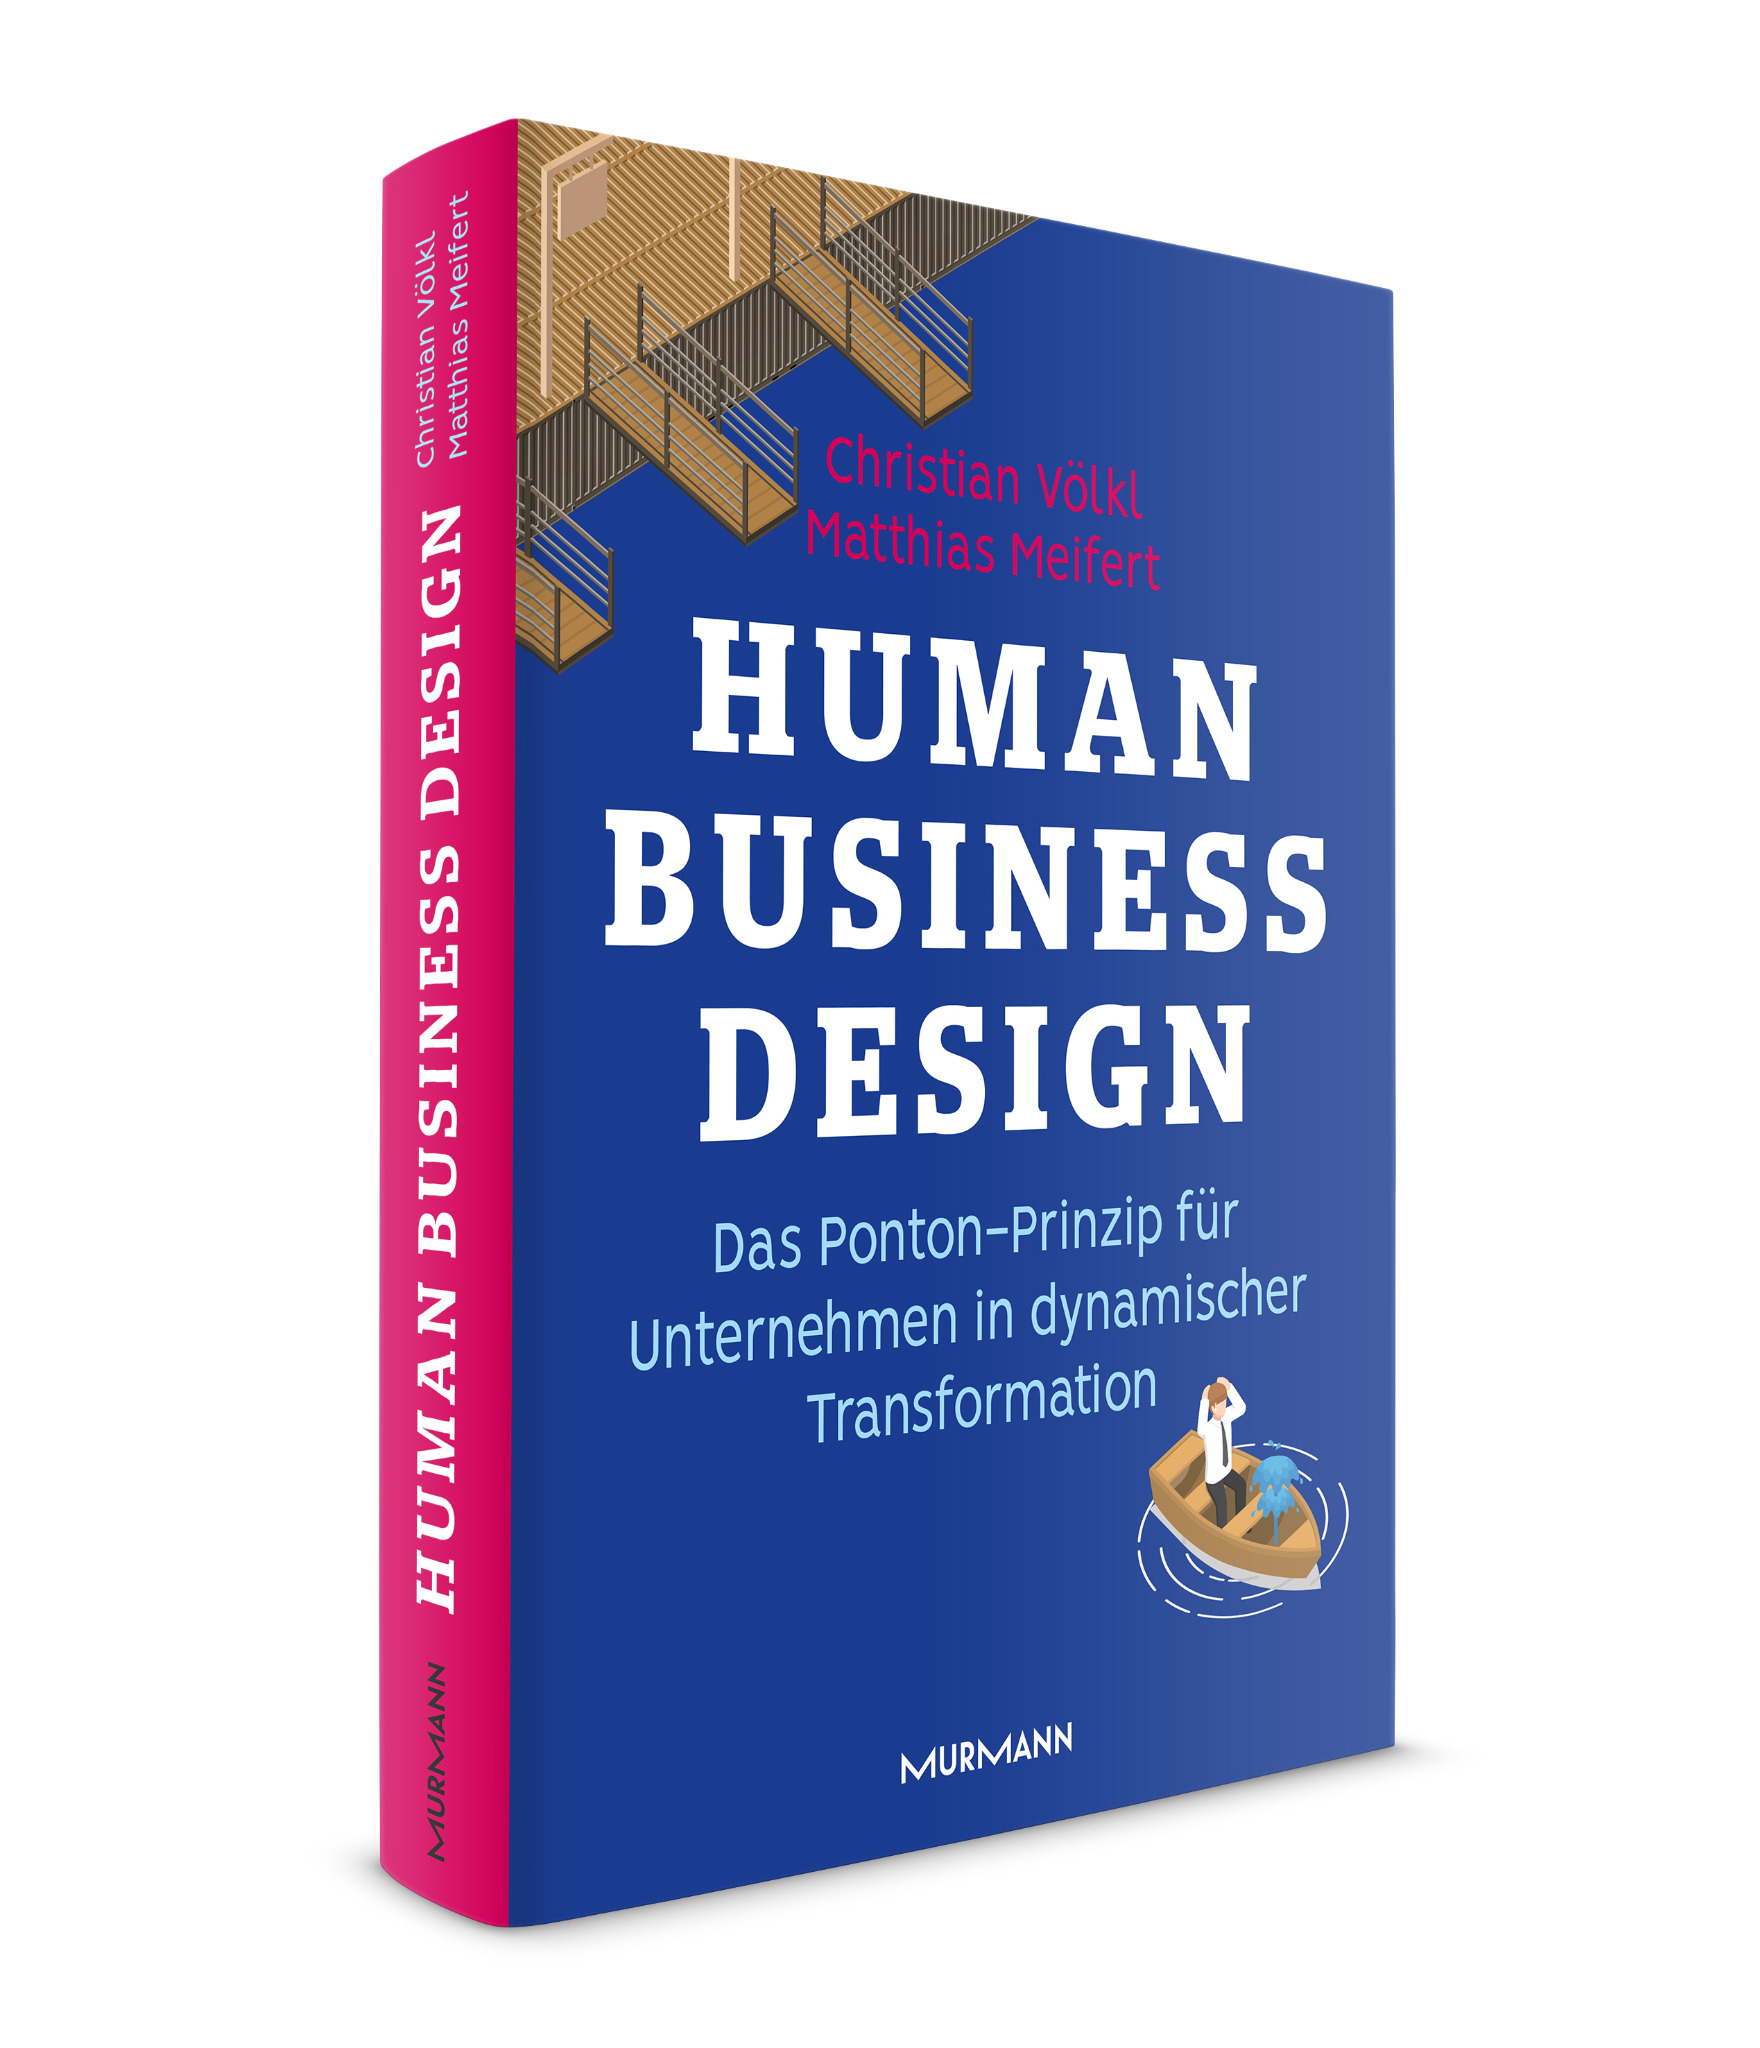 *Human Business Design / Christian Völkl, Matthias Meifert